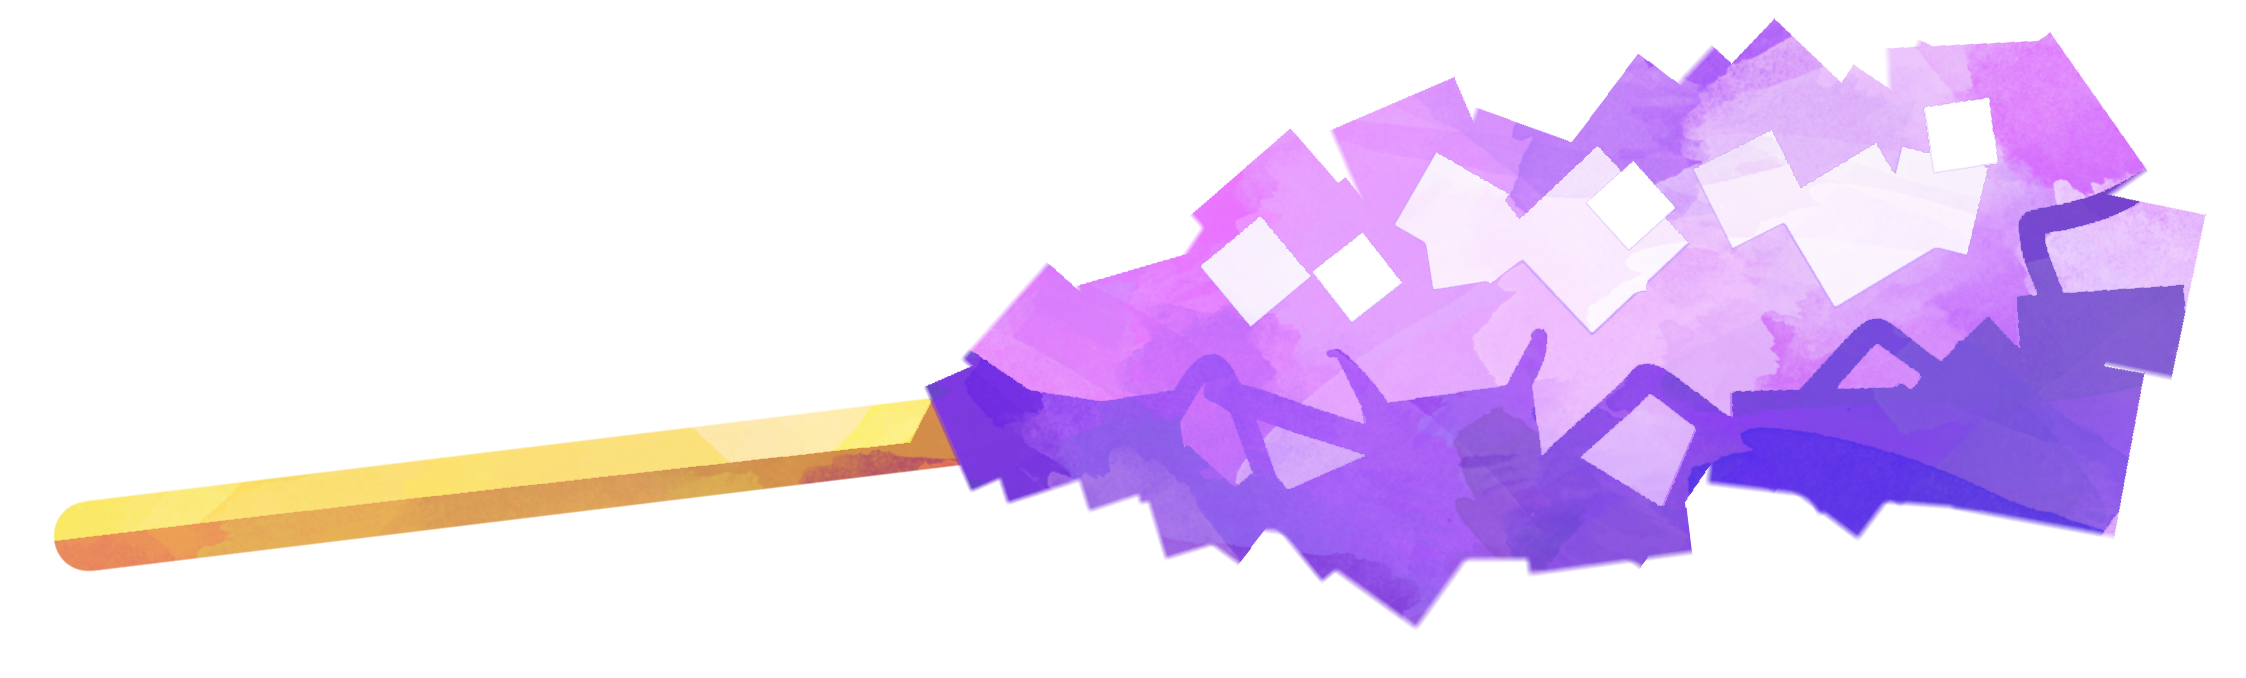 Purple rock candy png